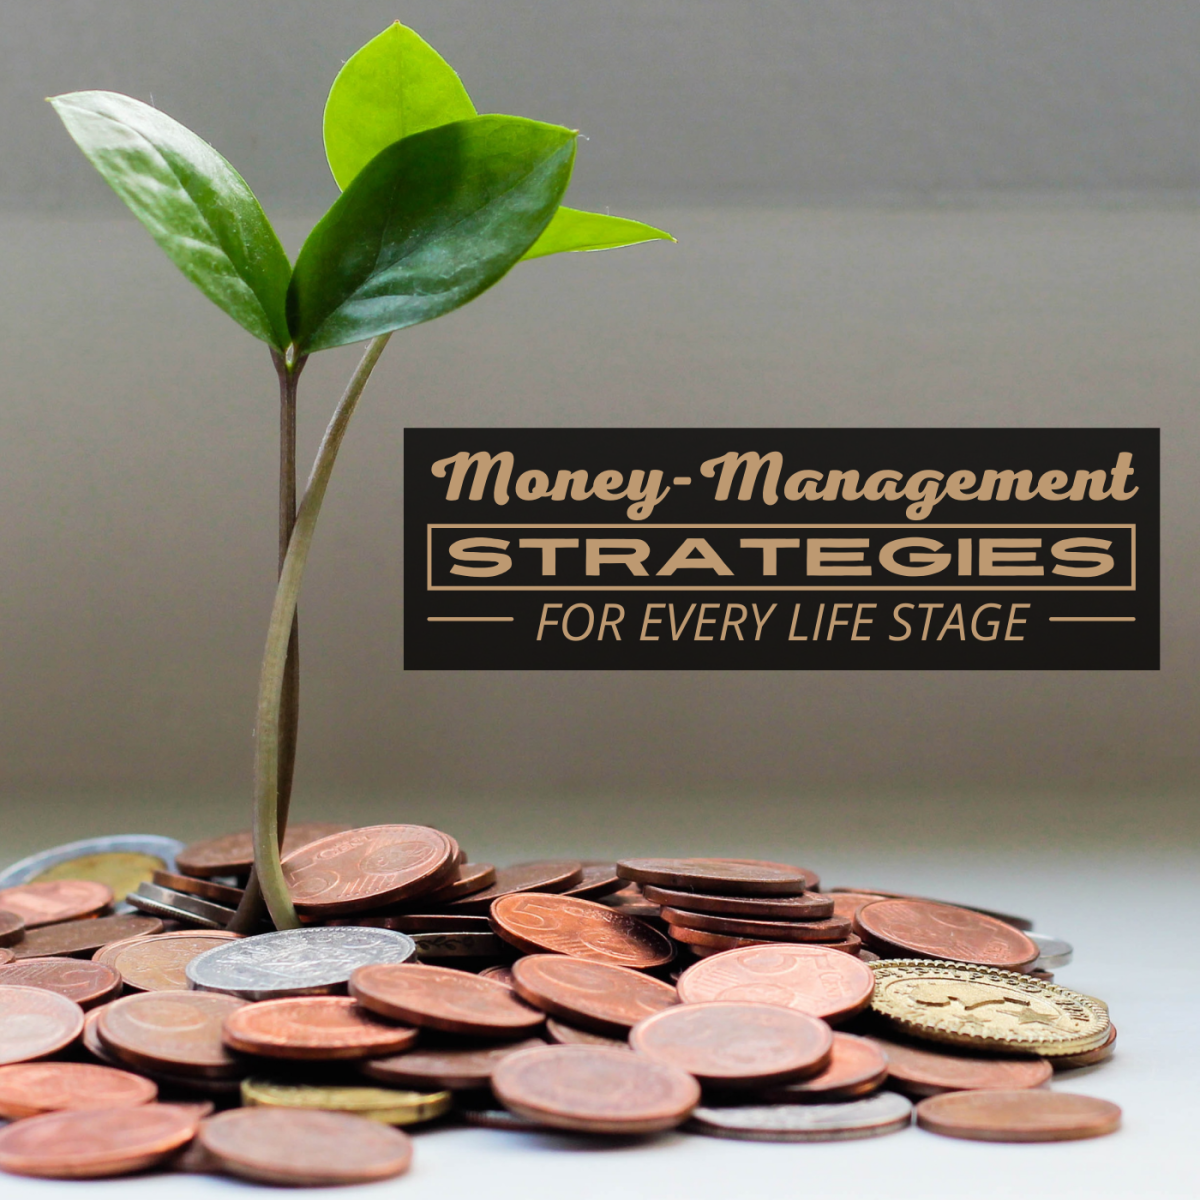 Money-management isn't one-size-fits-all—the way you handle your finances should change depending on where you are in your life.